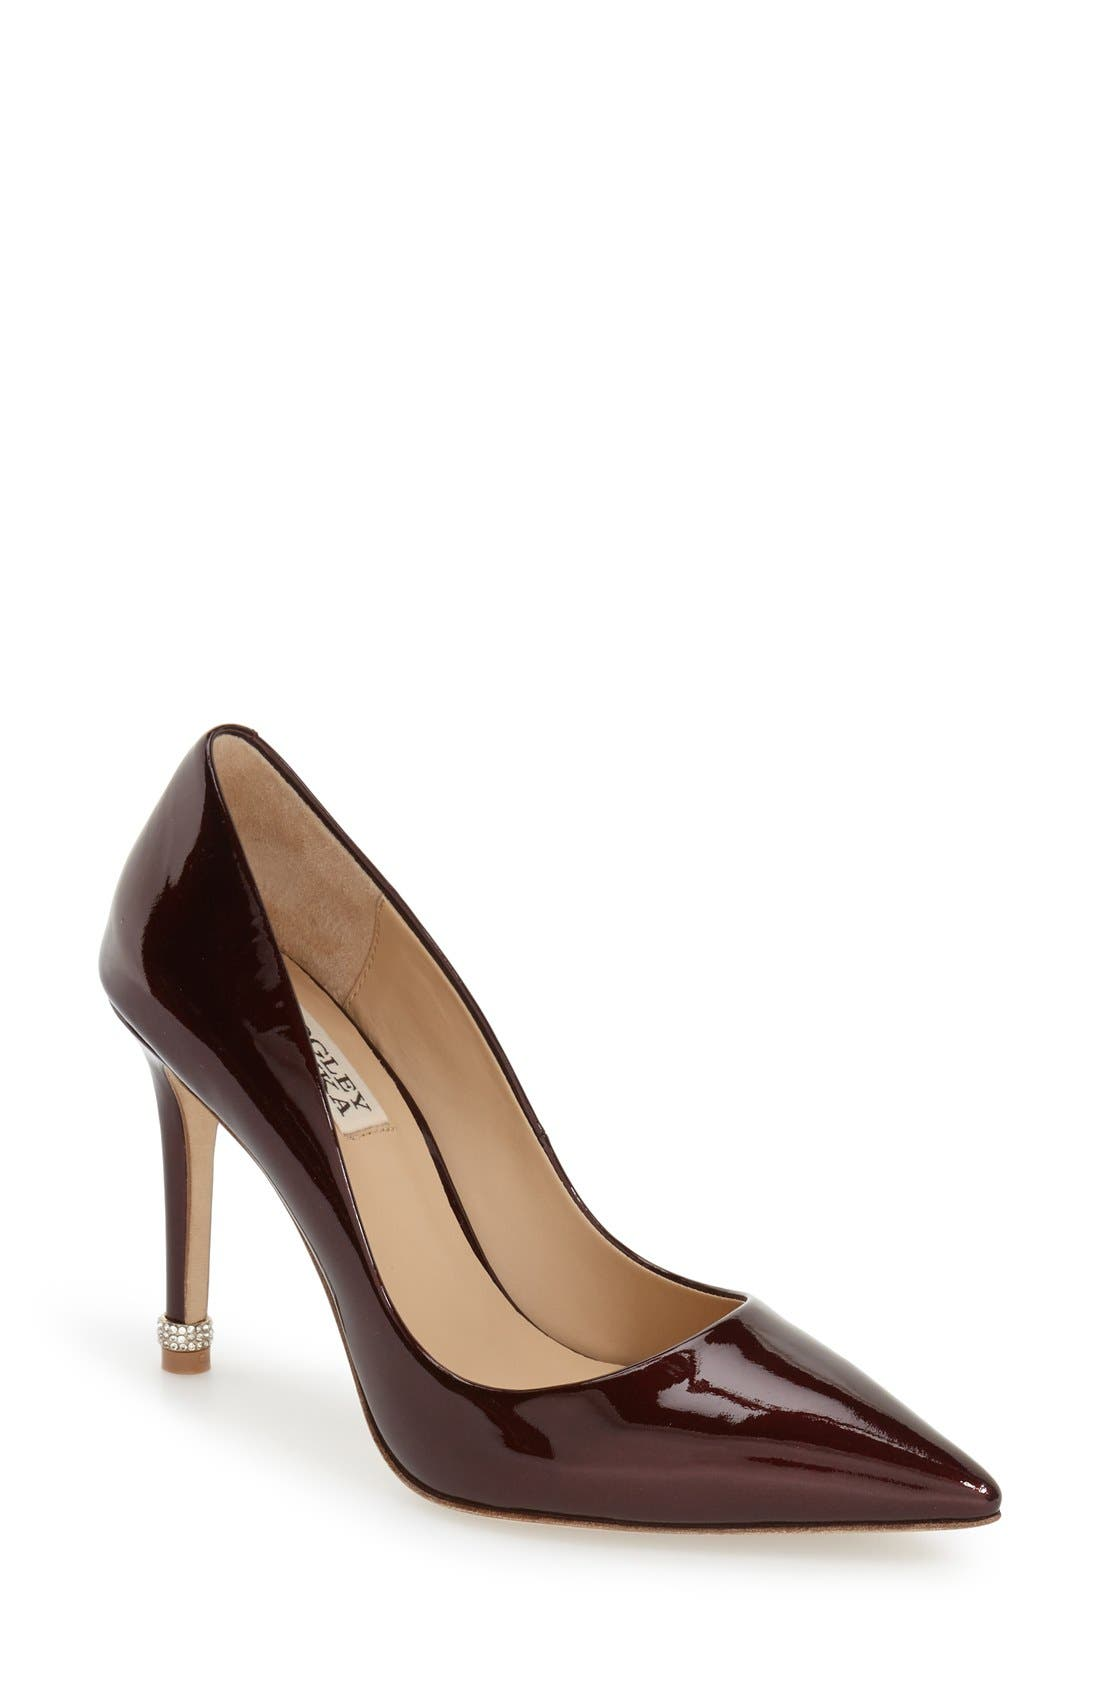 Alternate Image 1 Selected - Badgley Mischka 'Noelle' Pointy Toe Pump (Women)